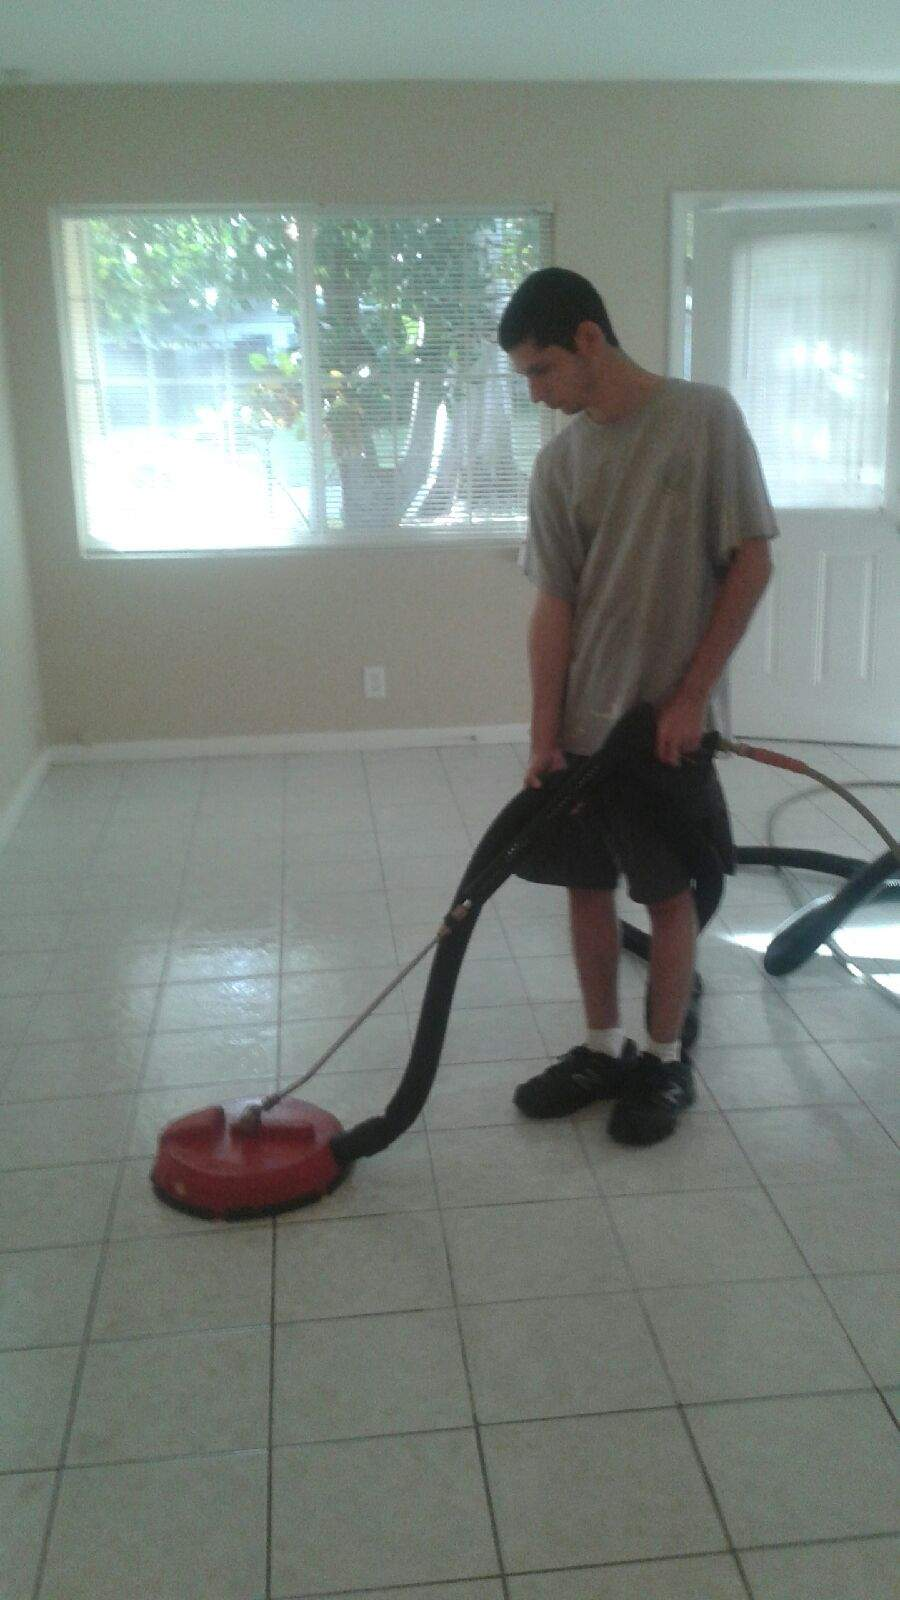 Tile and Grout Cleaning dirty and clean